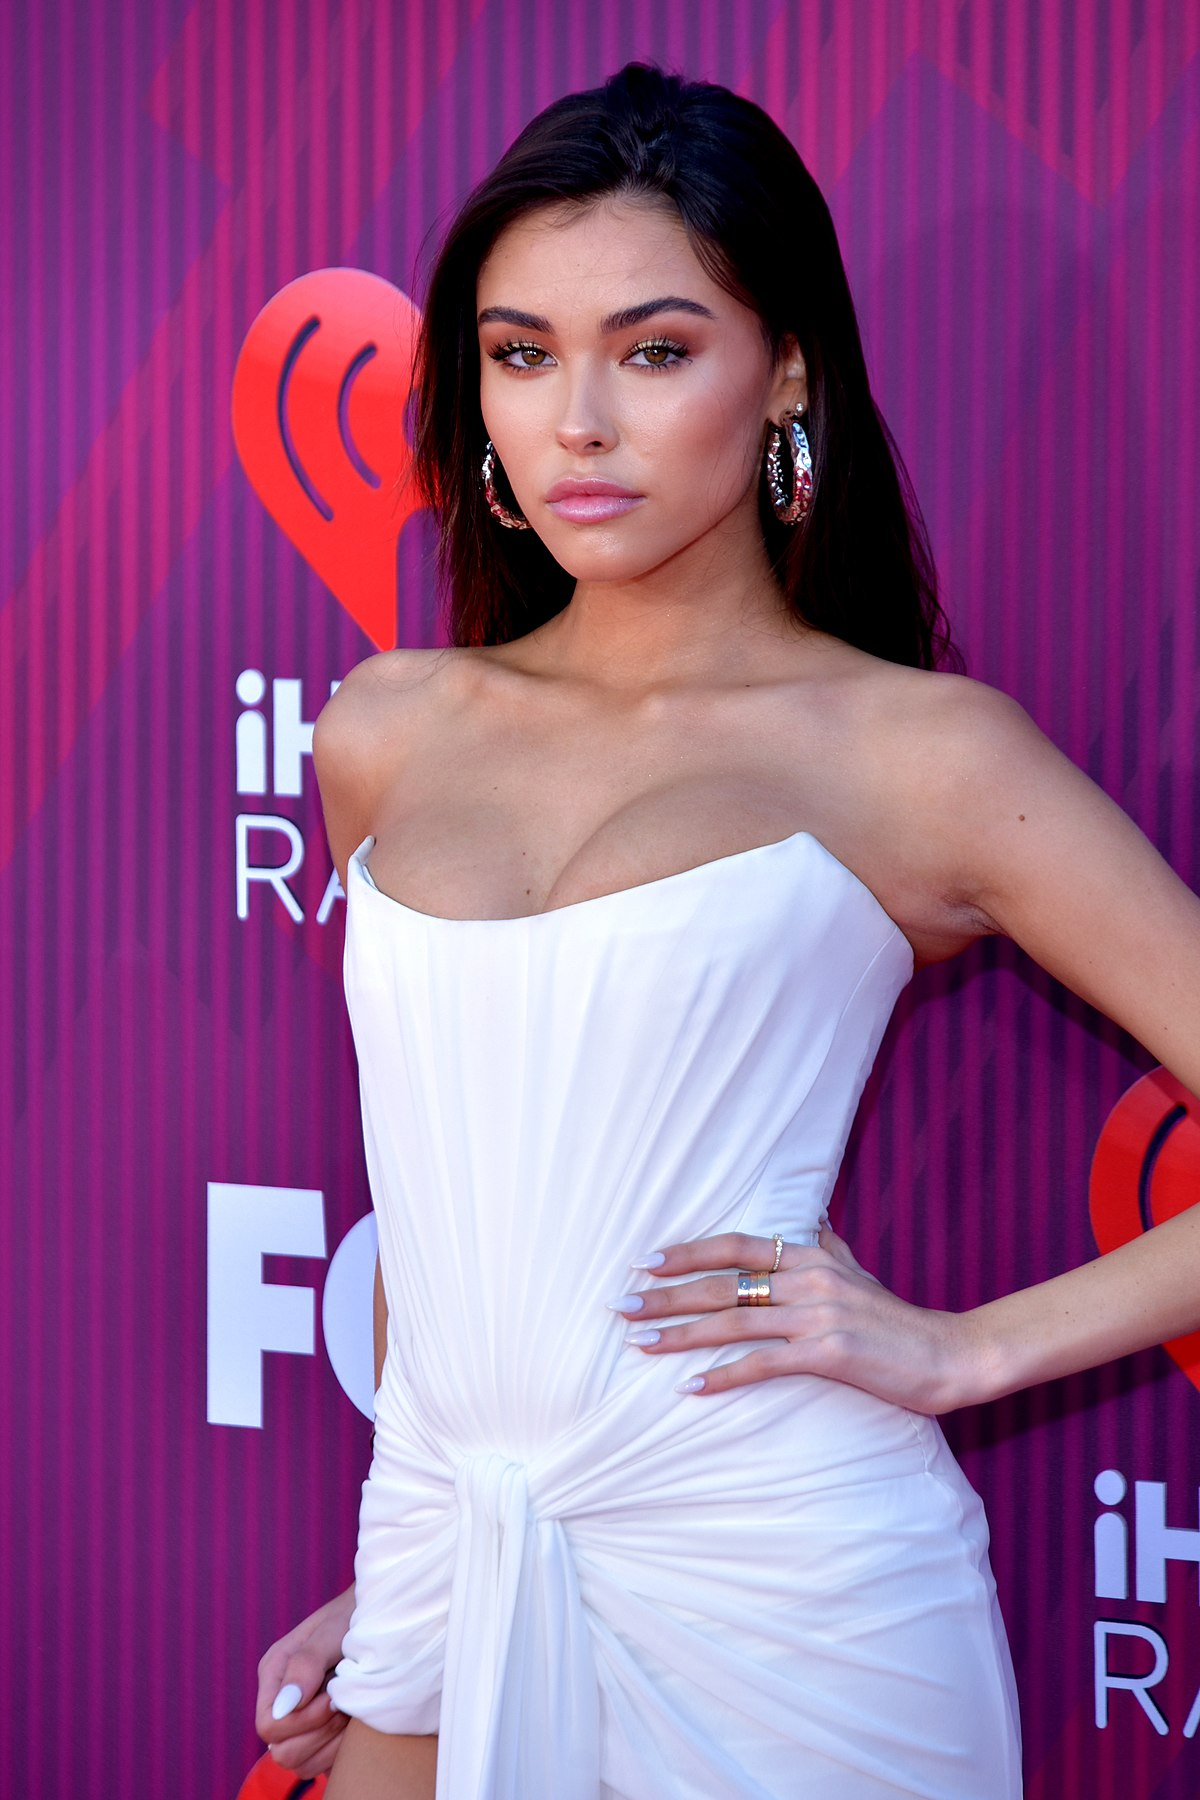 Madison Beer - Wikipedia